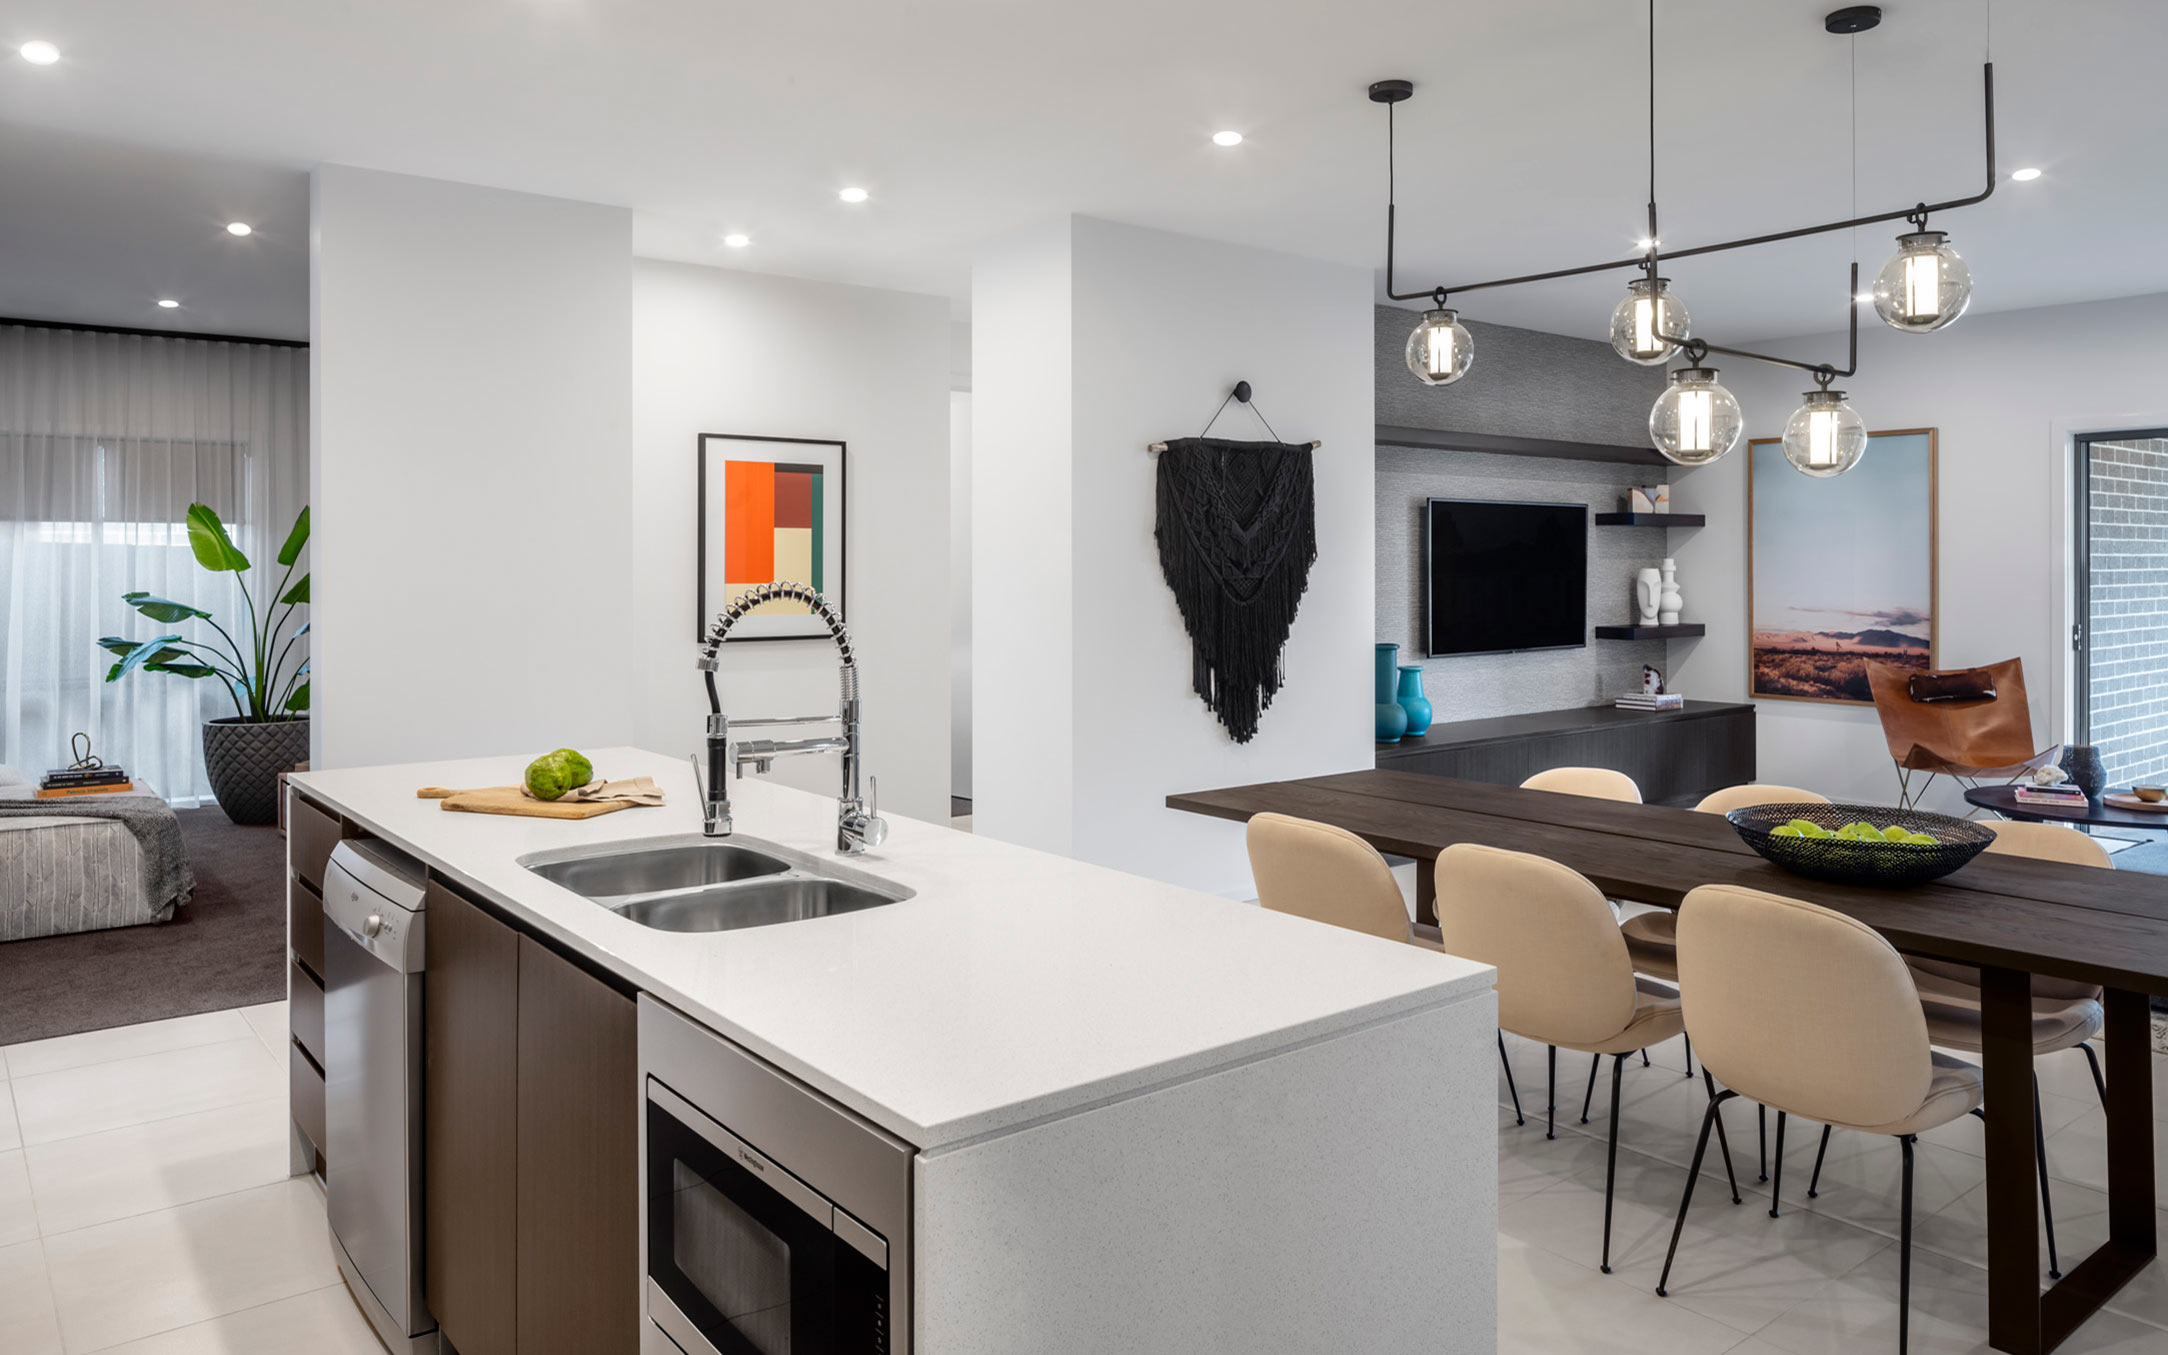 Thrive Homes Helix House Design Kitchen and Dining at Spring Farm